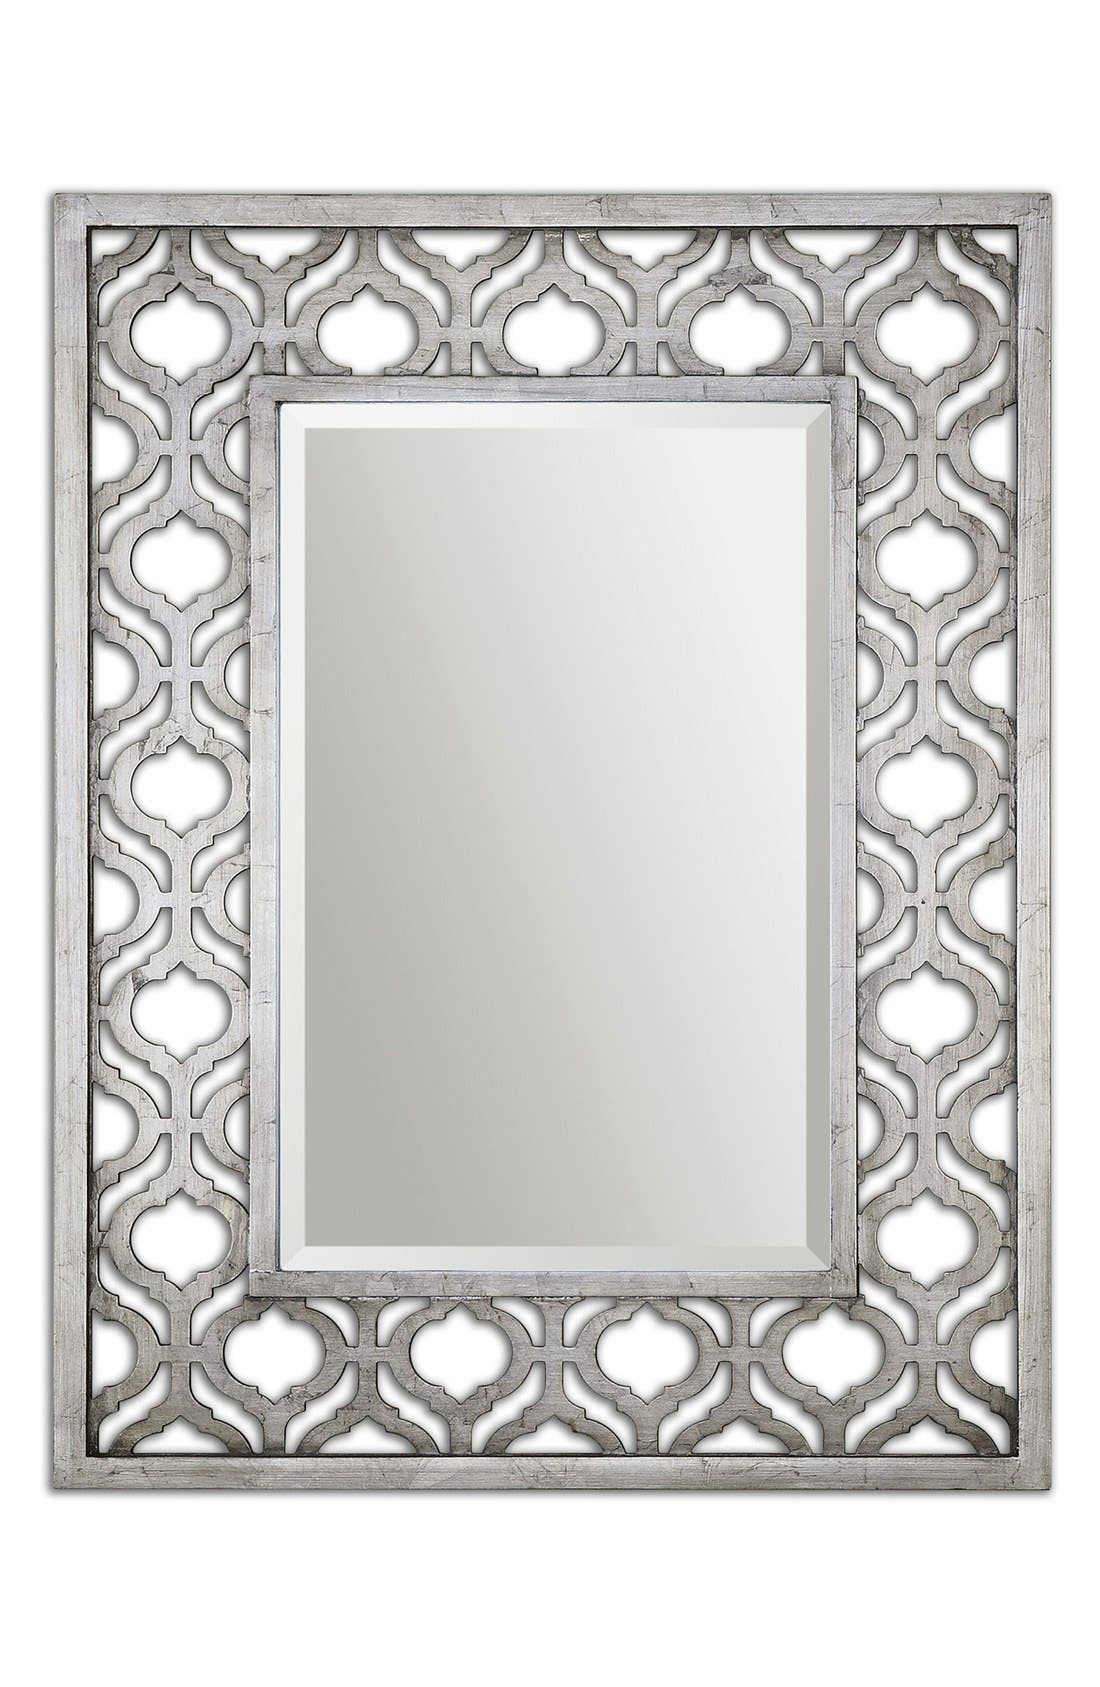 Alternate Image 1 Selected - Uttermost 'Sorbolo' Silver Leaf Mirror